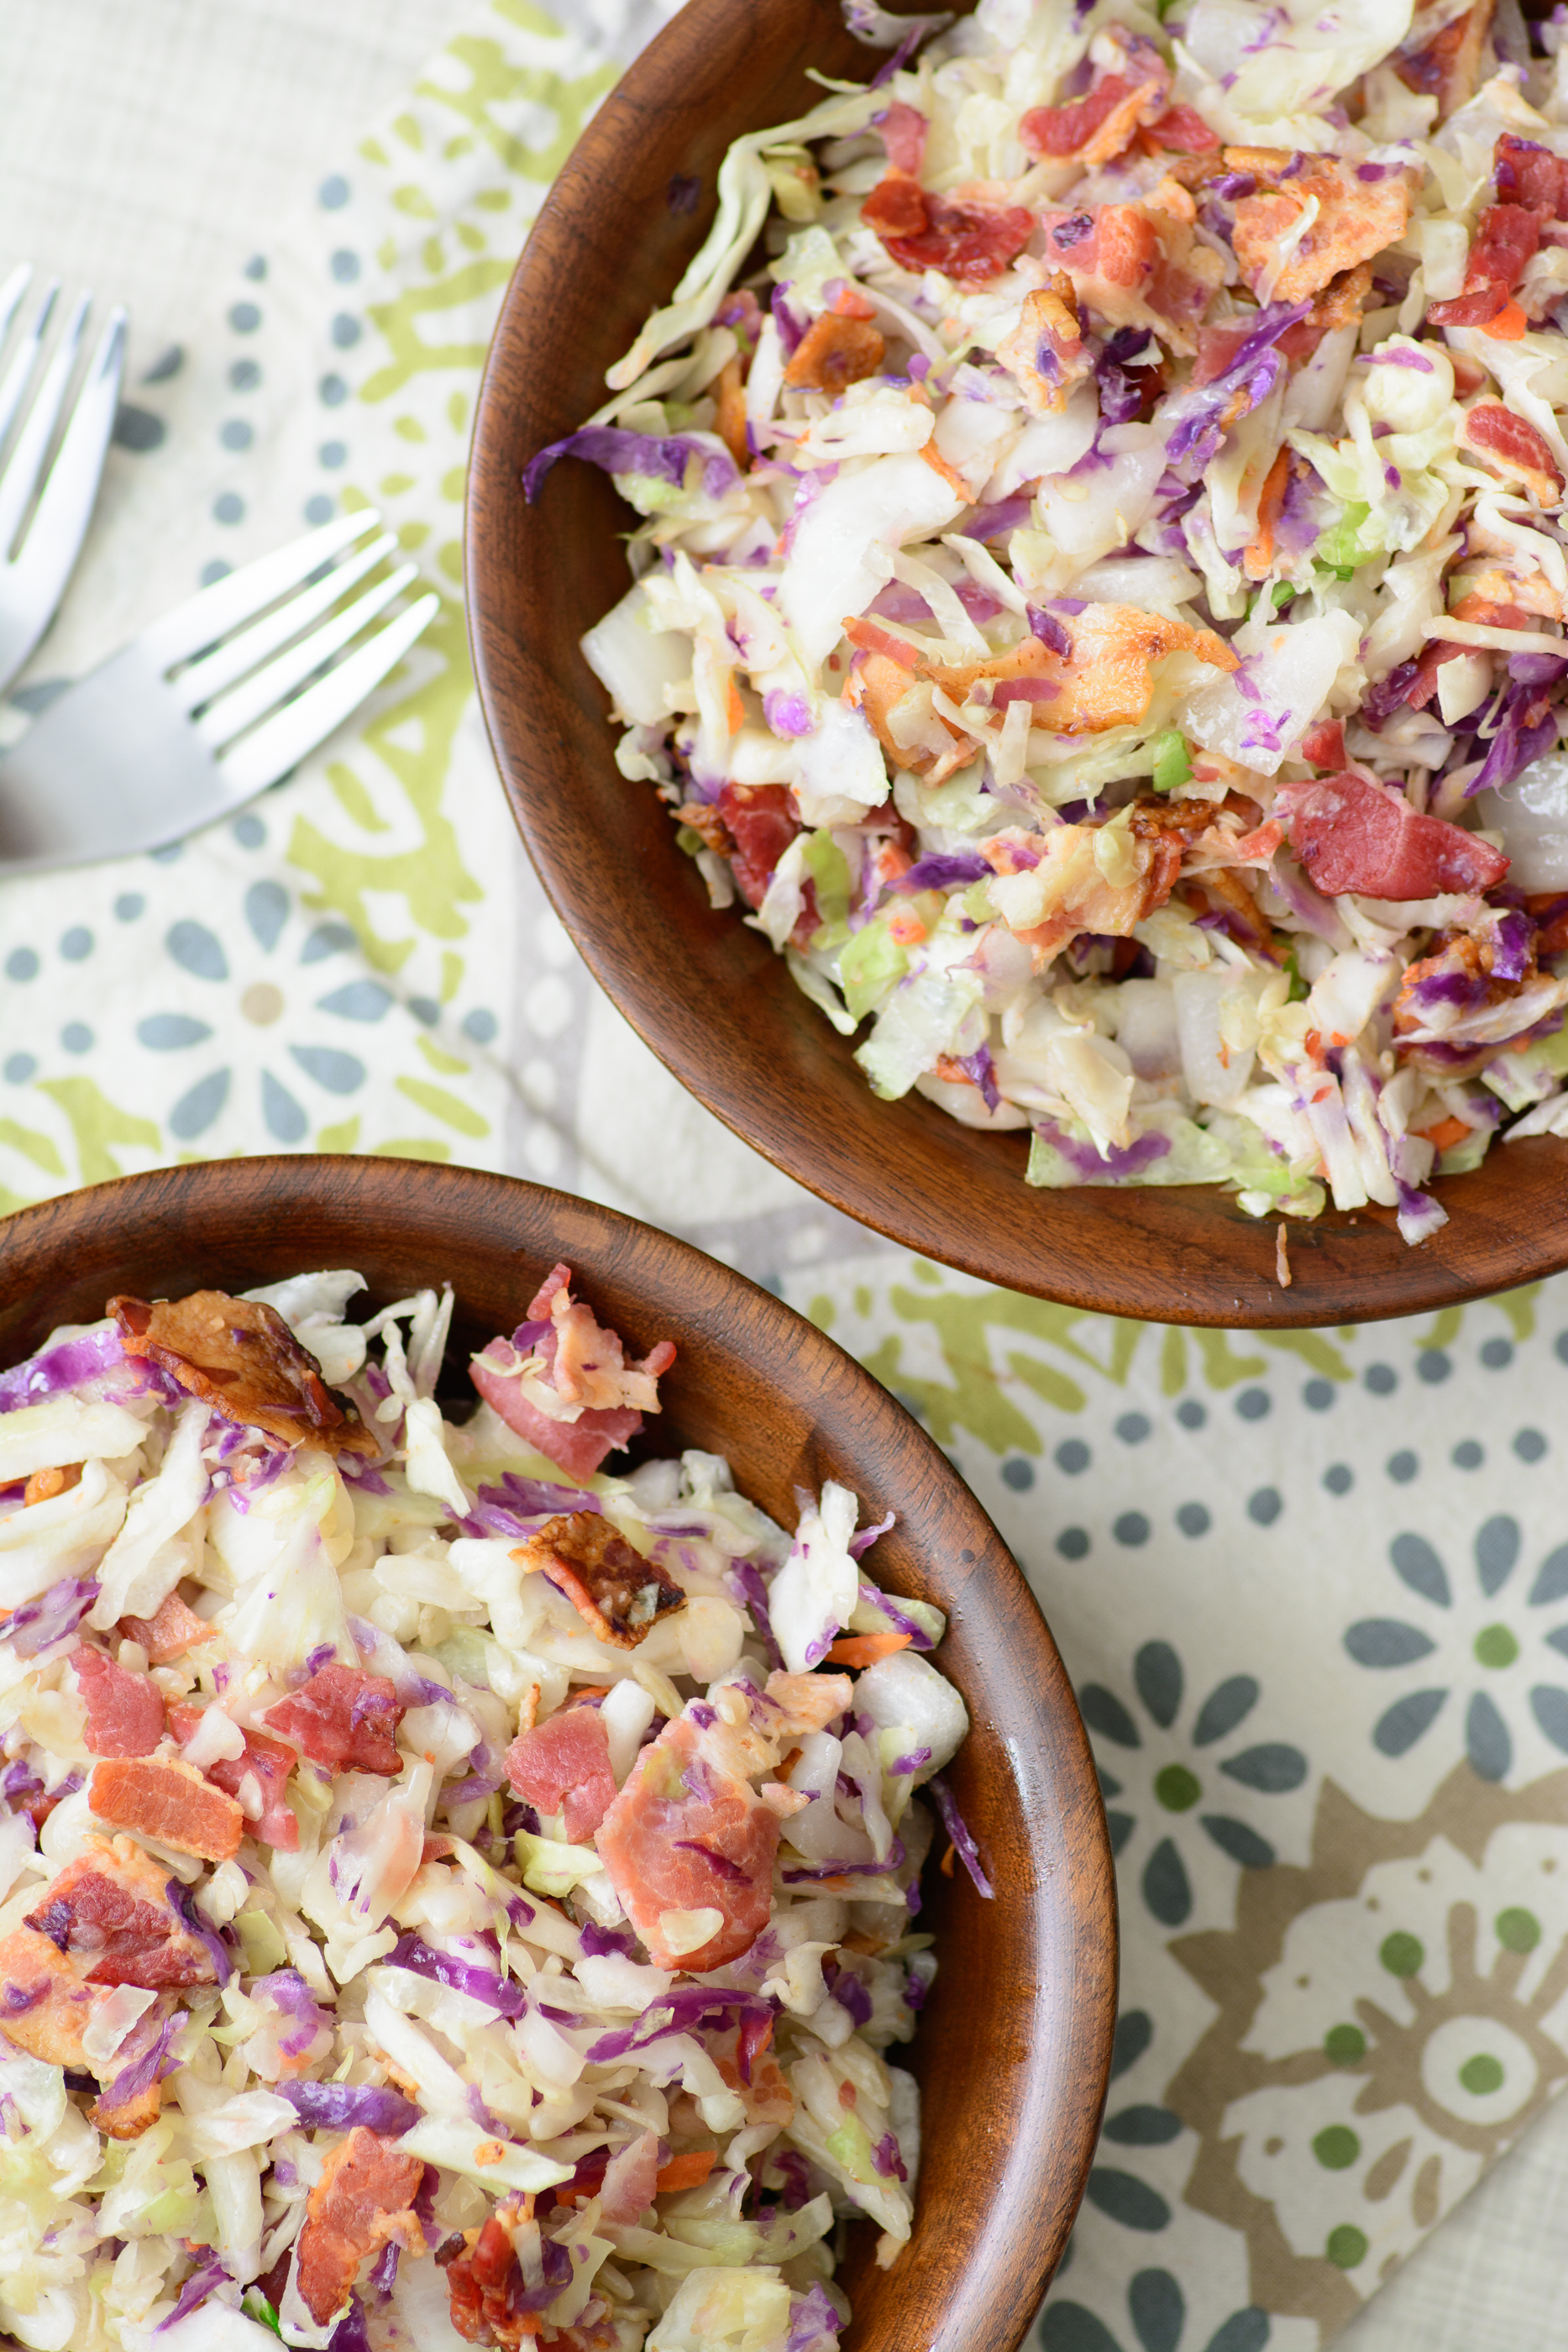 Bacon Coleslaw. This delicious bacon coleslaw recipe is a quick and easy side dish that will perfectly accompany just about any dish. It's always a hit at picnics and BBQ's. Plus you can never go wrong with bacon. Yum!